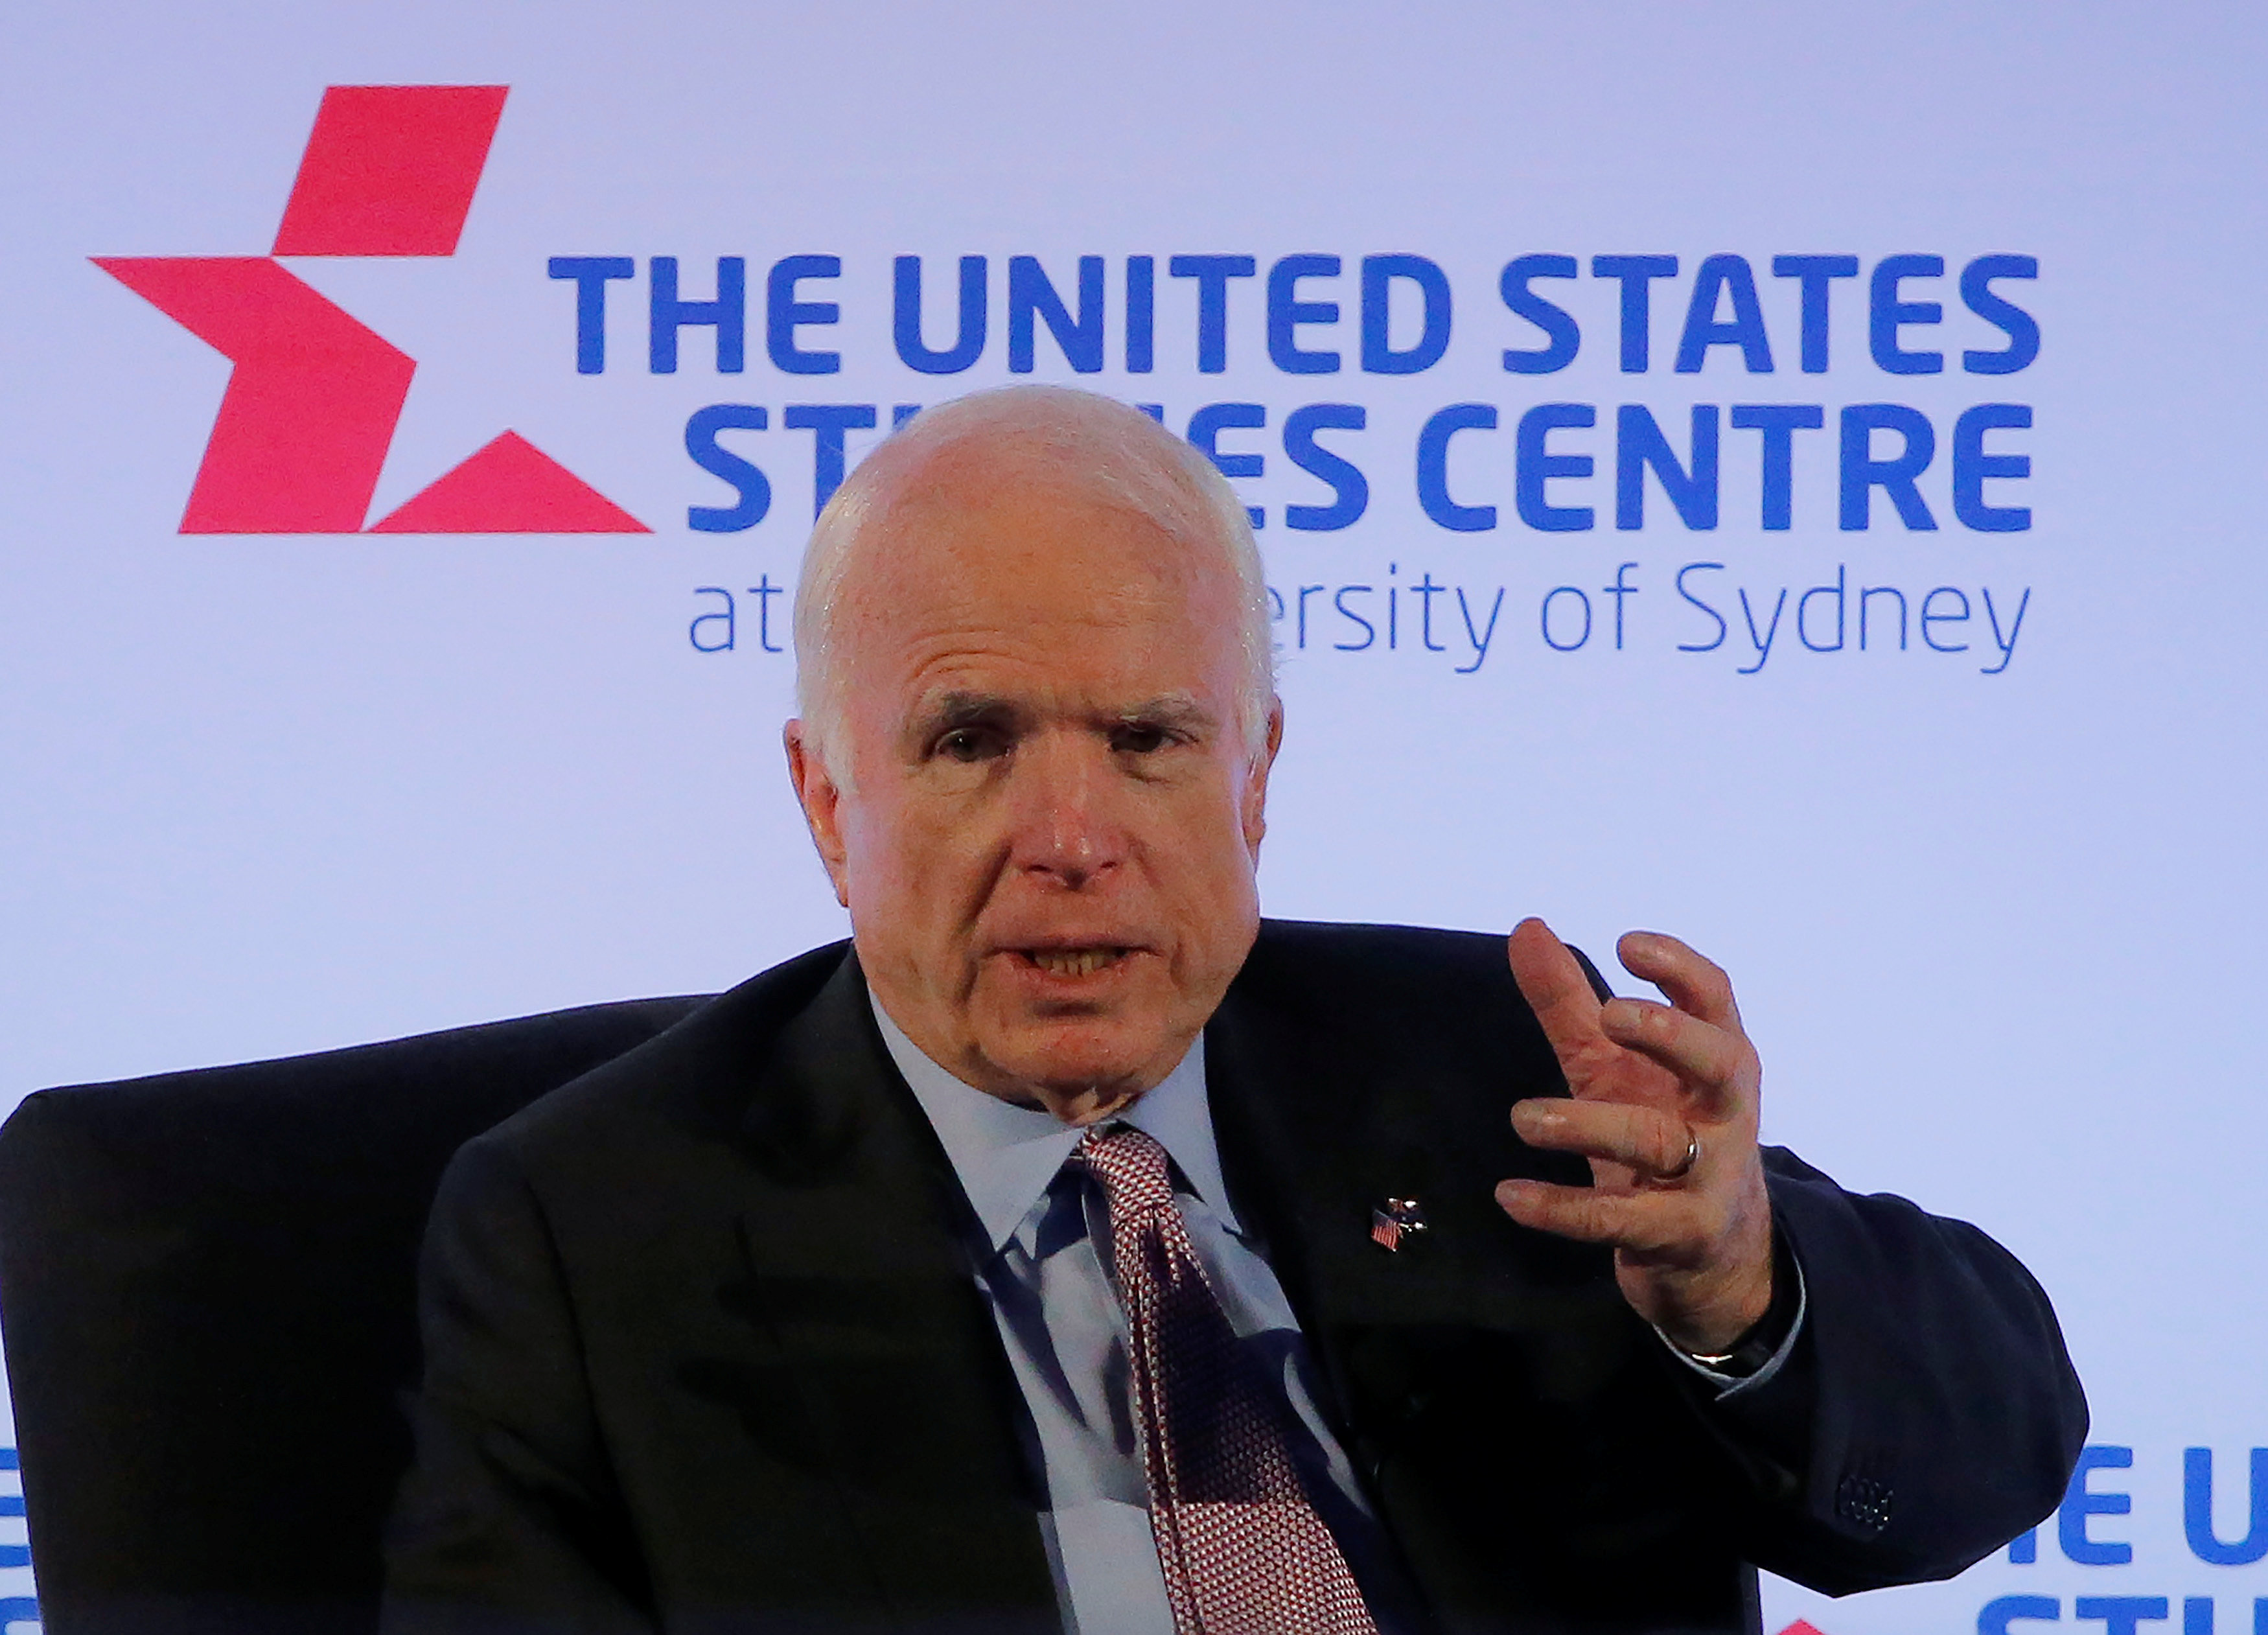 United States Senator John McCain speaks at a United States Studies Centre event in Sydney, Australia May 30, 2017. REUTERS/Jason Reed